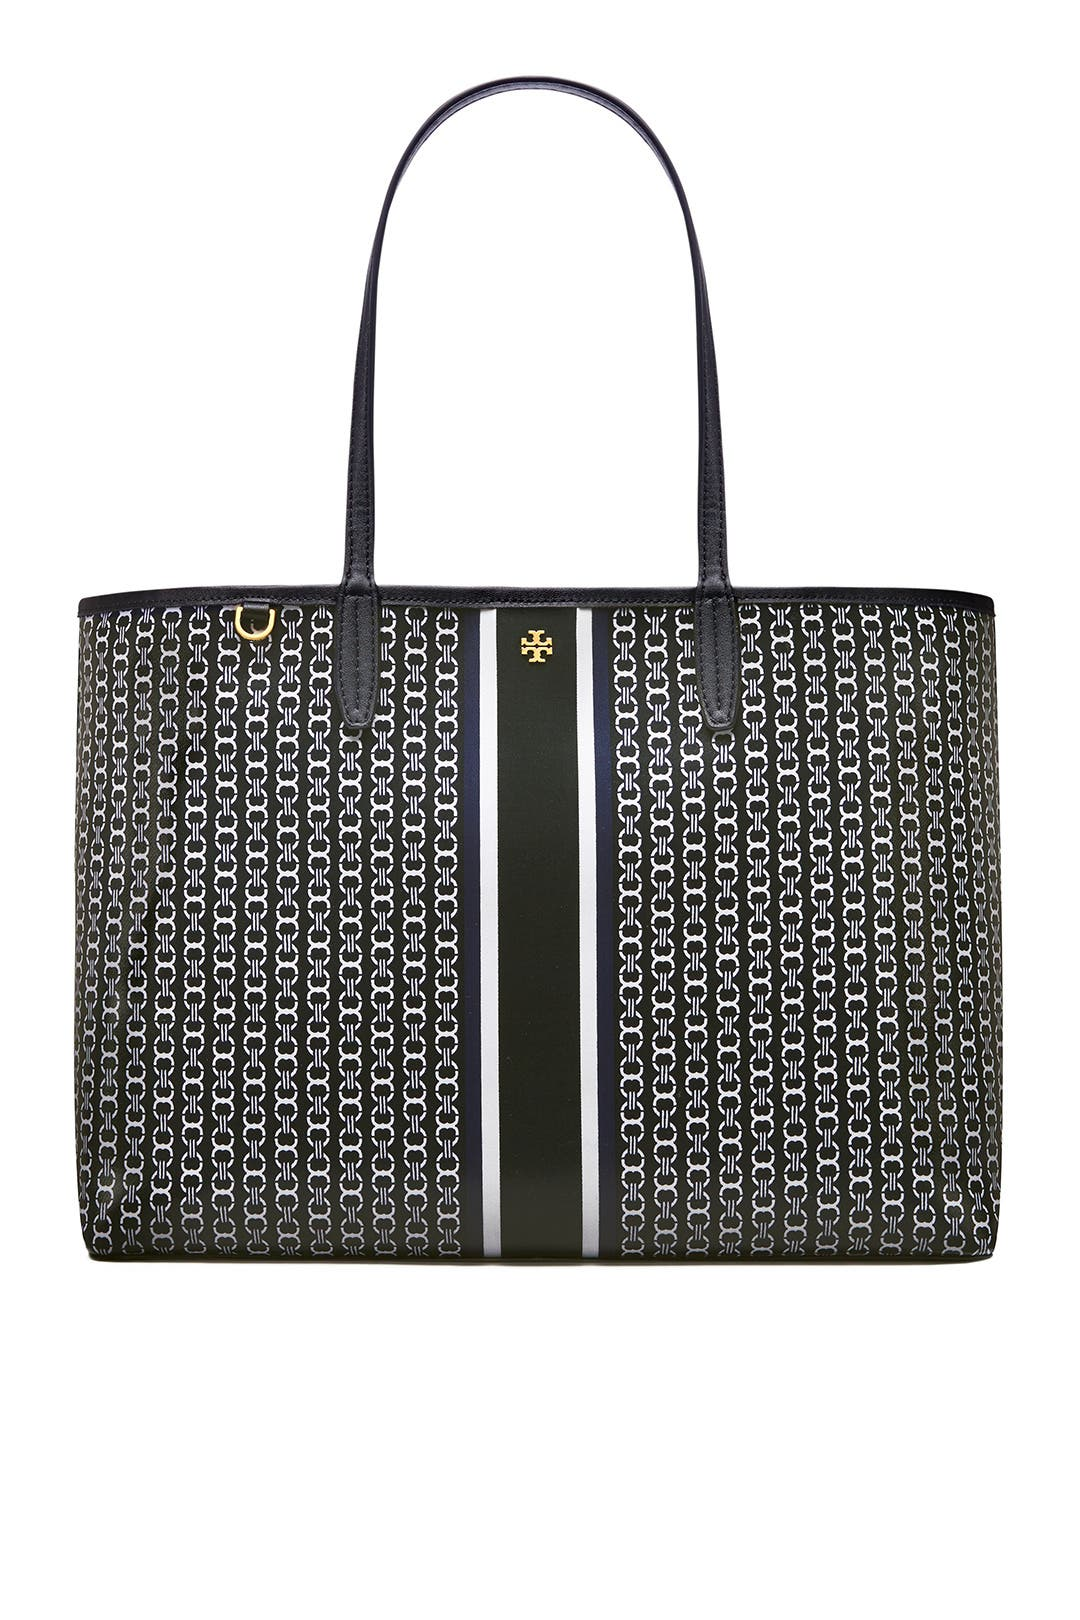 3129eac53 Black Gemini Link Tote by Tory Burch Accessories for $30 | Rent the ...